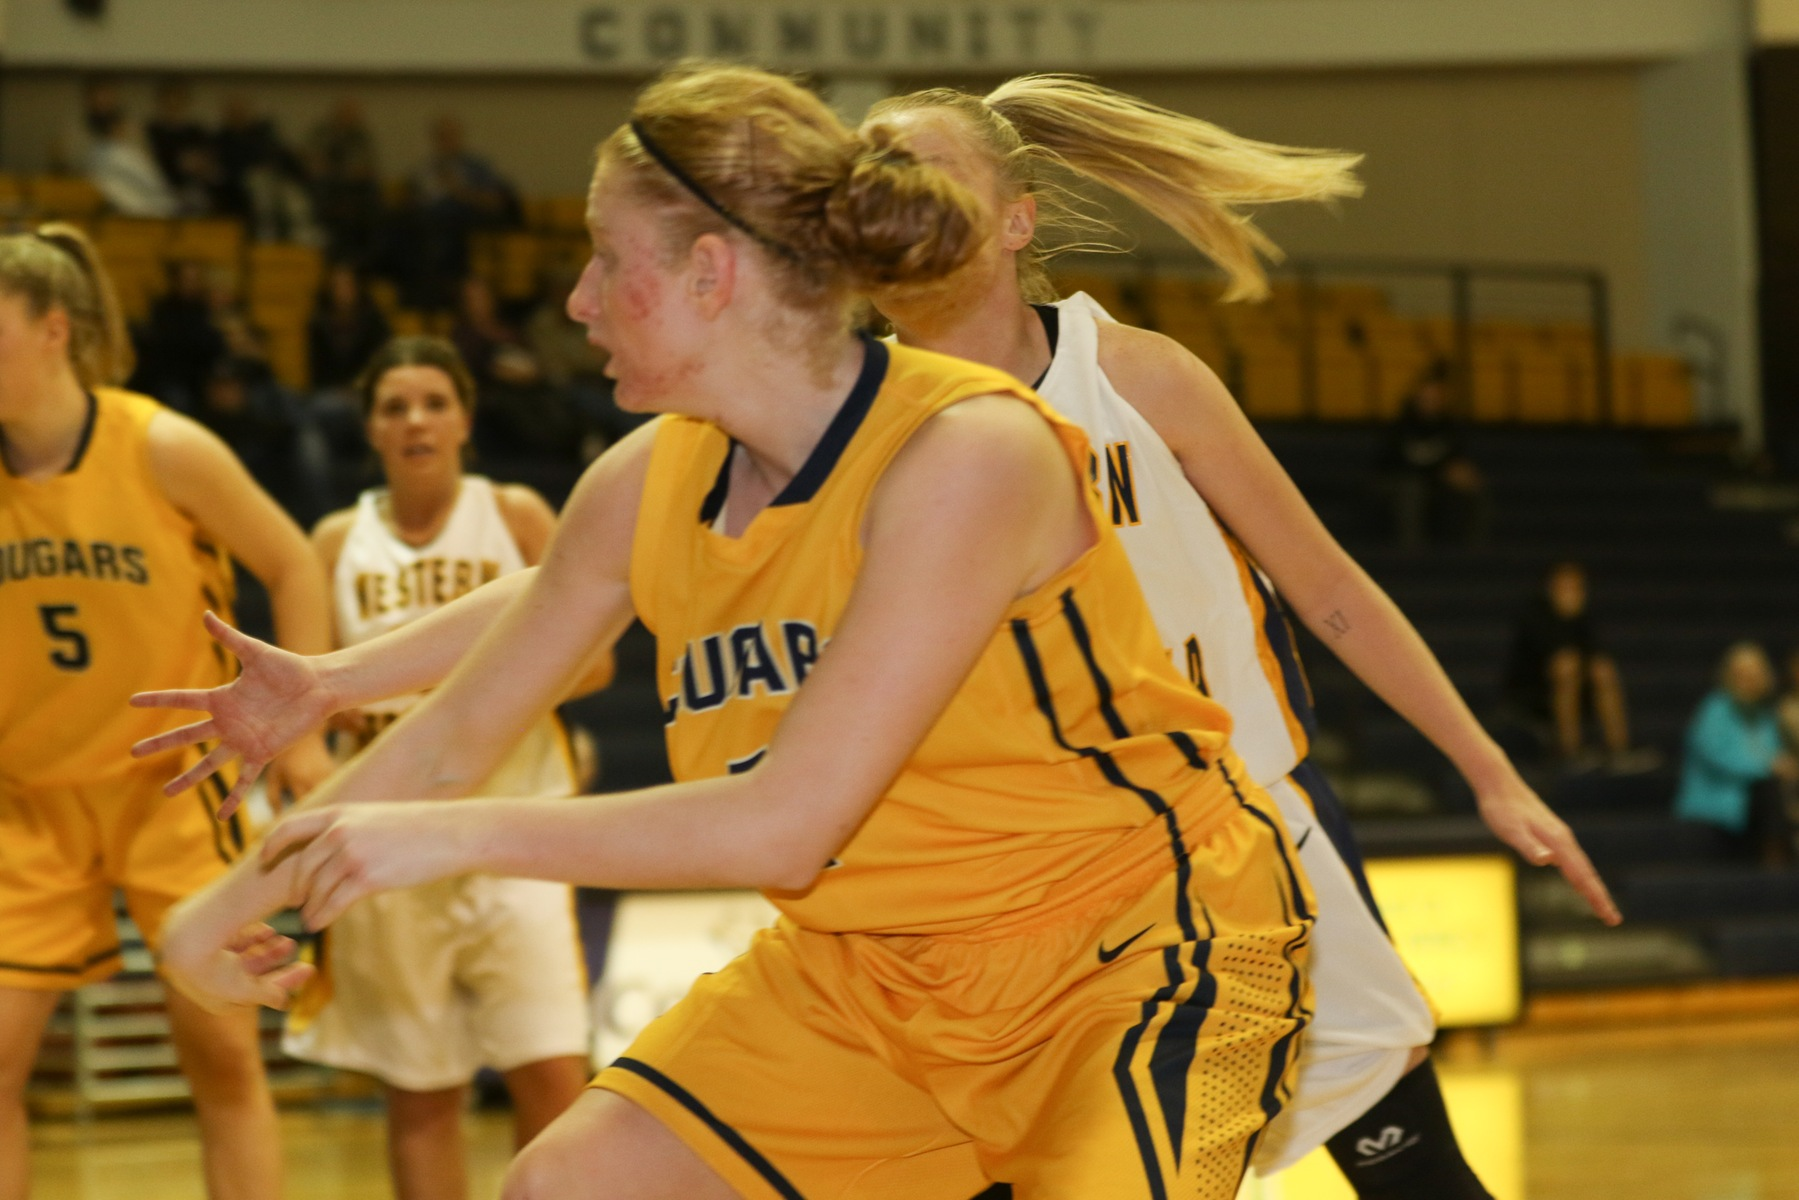 WNCC women take down No. 18 Iowa Western